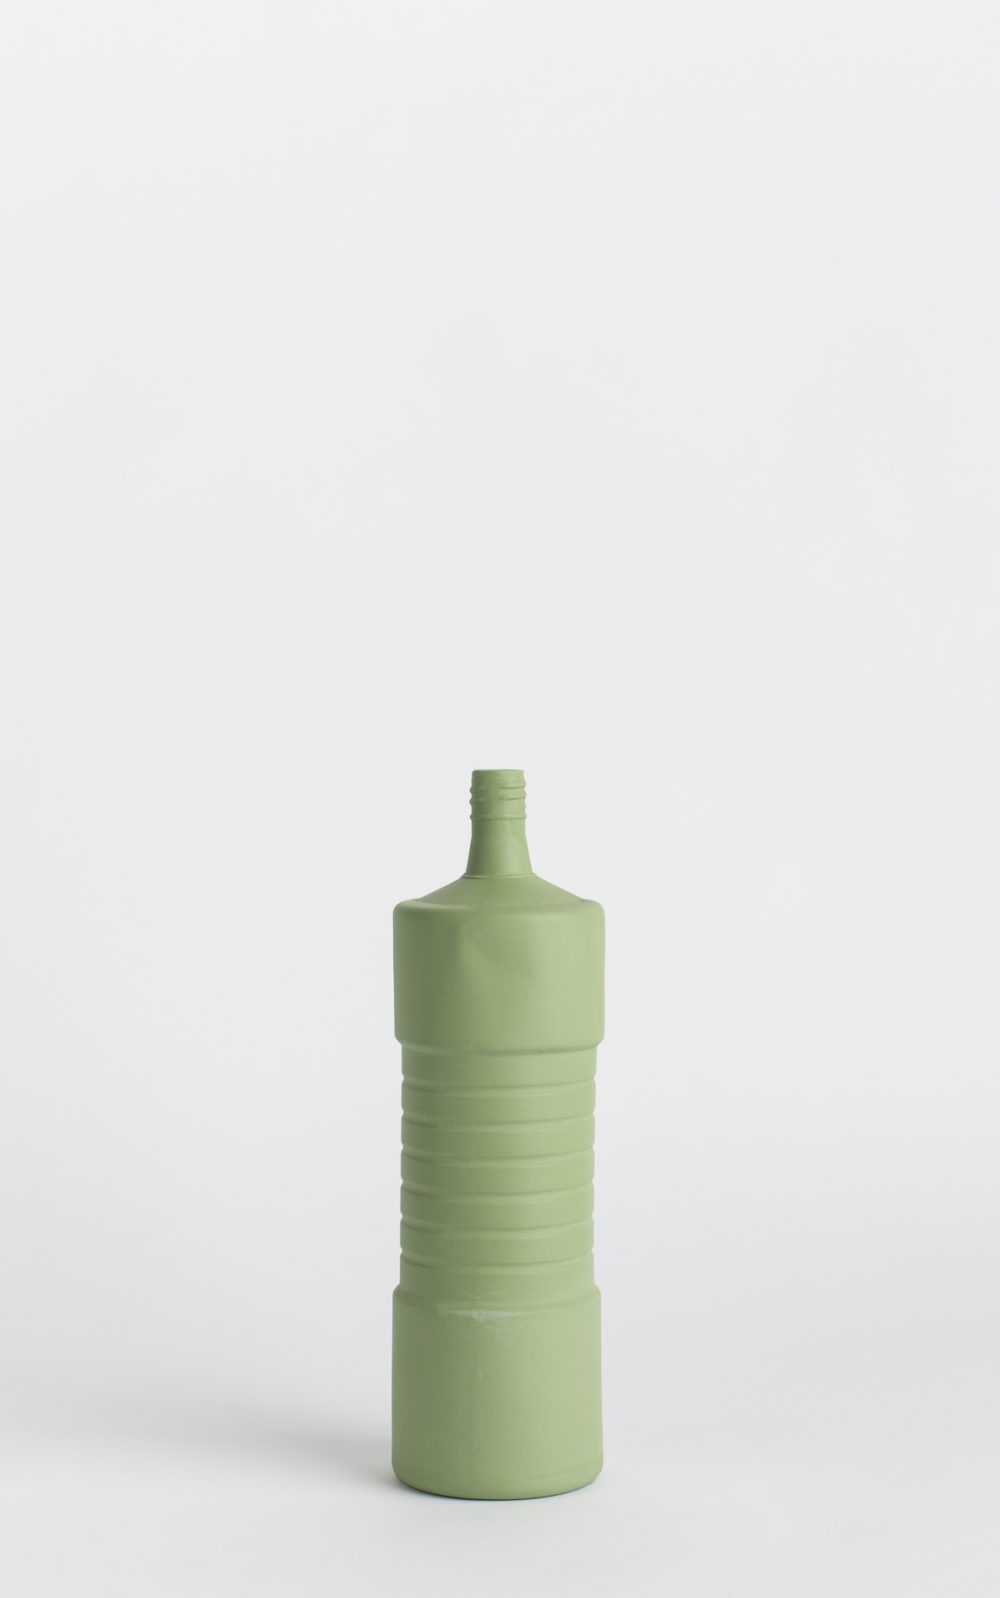 bottle vase #5 dark green with flower